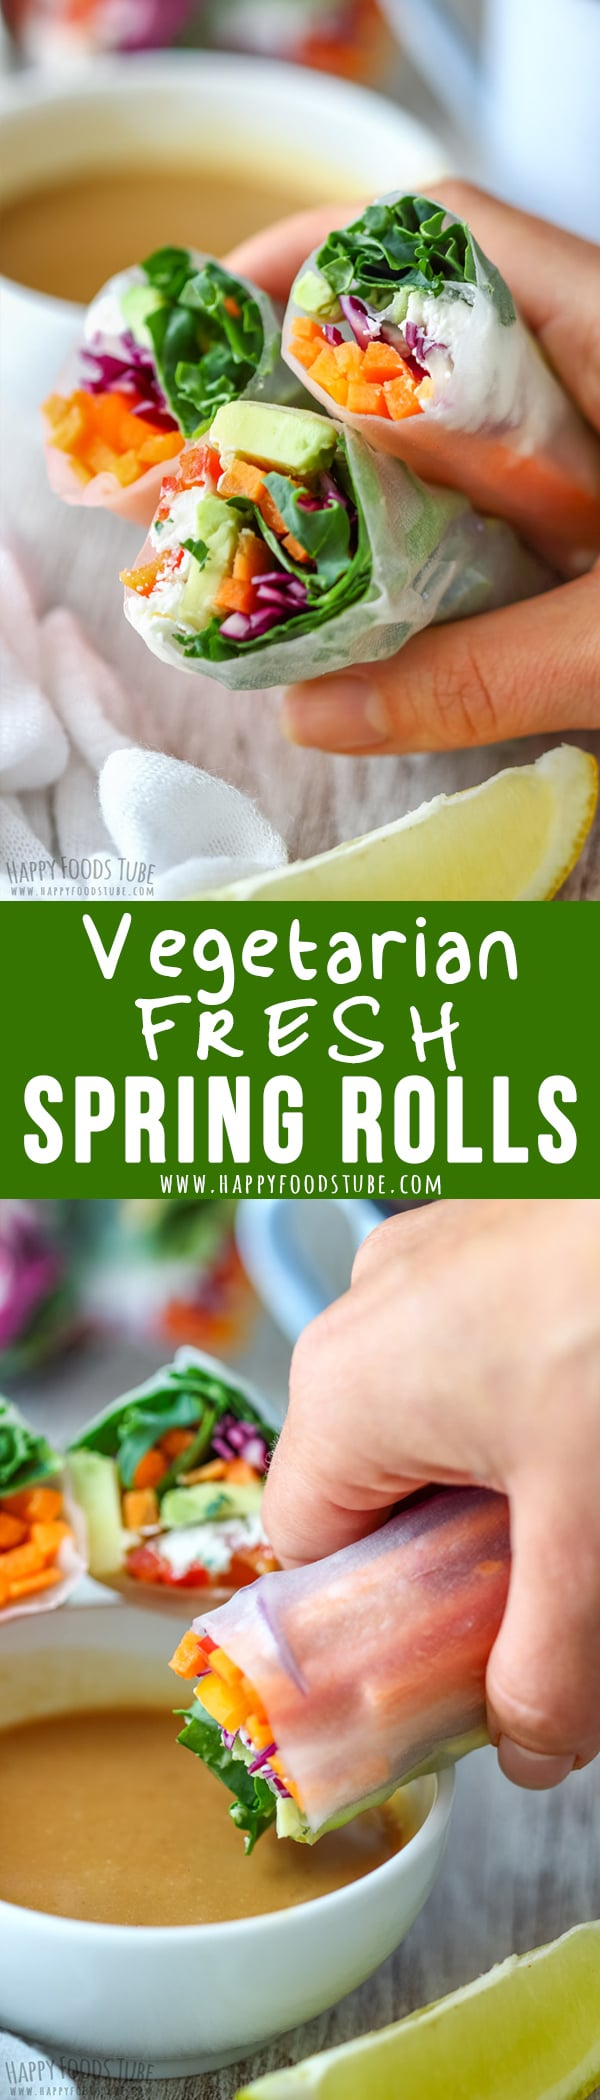 Vegetarian Fresh Spring Rolls with Peanut Butter Dipping Sauce are packed with fresh vegetables. They are light, refreshing and tasty! #springrolls #vegetarian #fresh #recipe #asianfood #vietnamese #healthy #howtomake #glutenfree #homemade